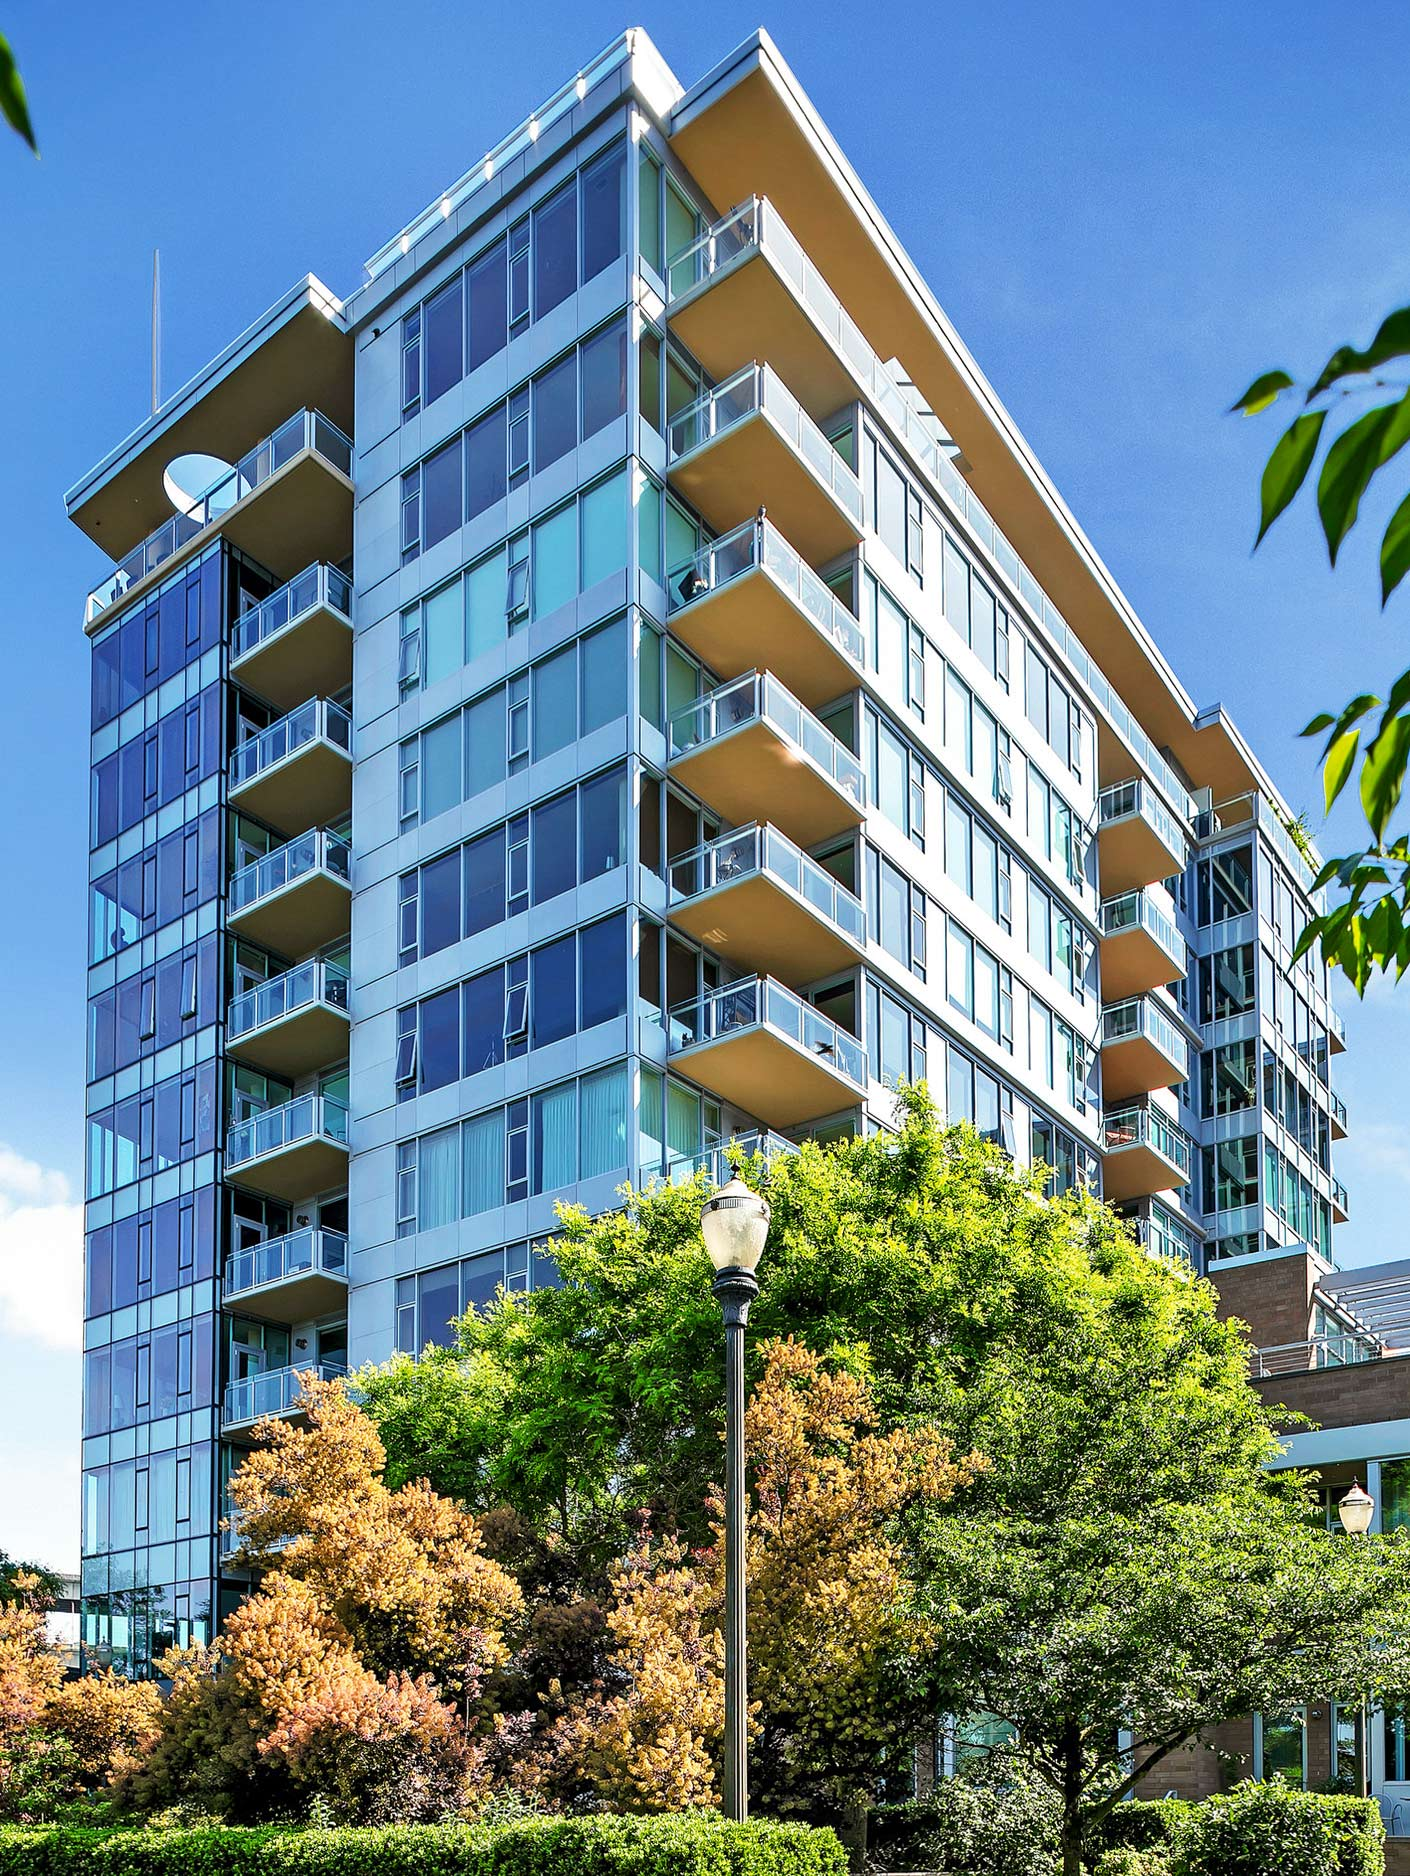 The Strand Condos:Located in Downtown Portland, Oregon next to the RiverPlace Marina and Tom McCall Waterfront Park.